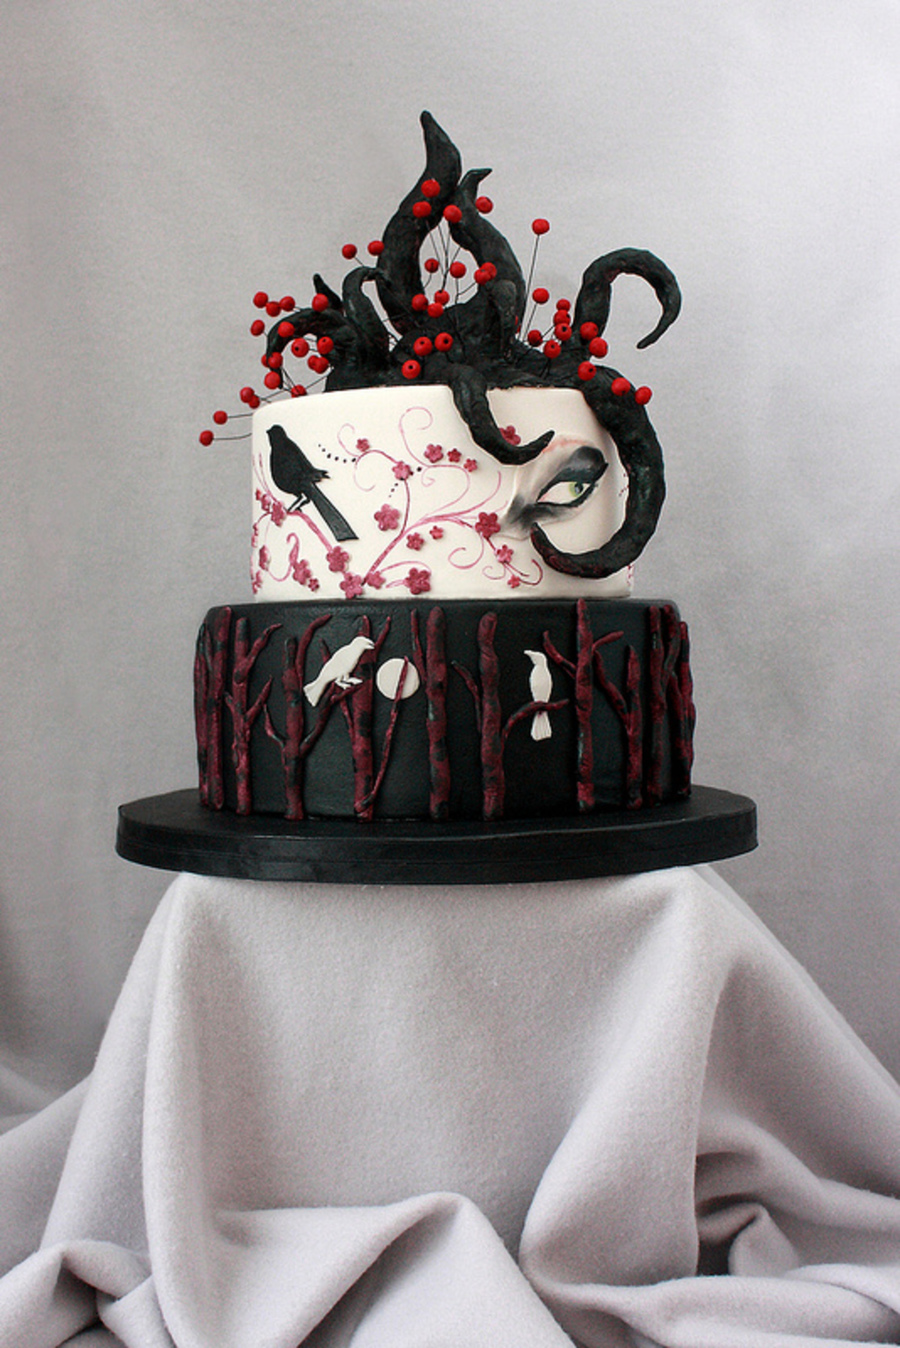 Gothic Wedding Cake,...in The October 2012, Volume 3 Issue 9 Midnight Magic Section Of Cake Central Magazine! on Cake Central